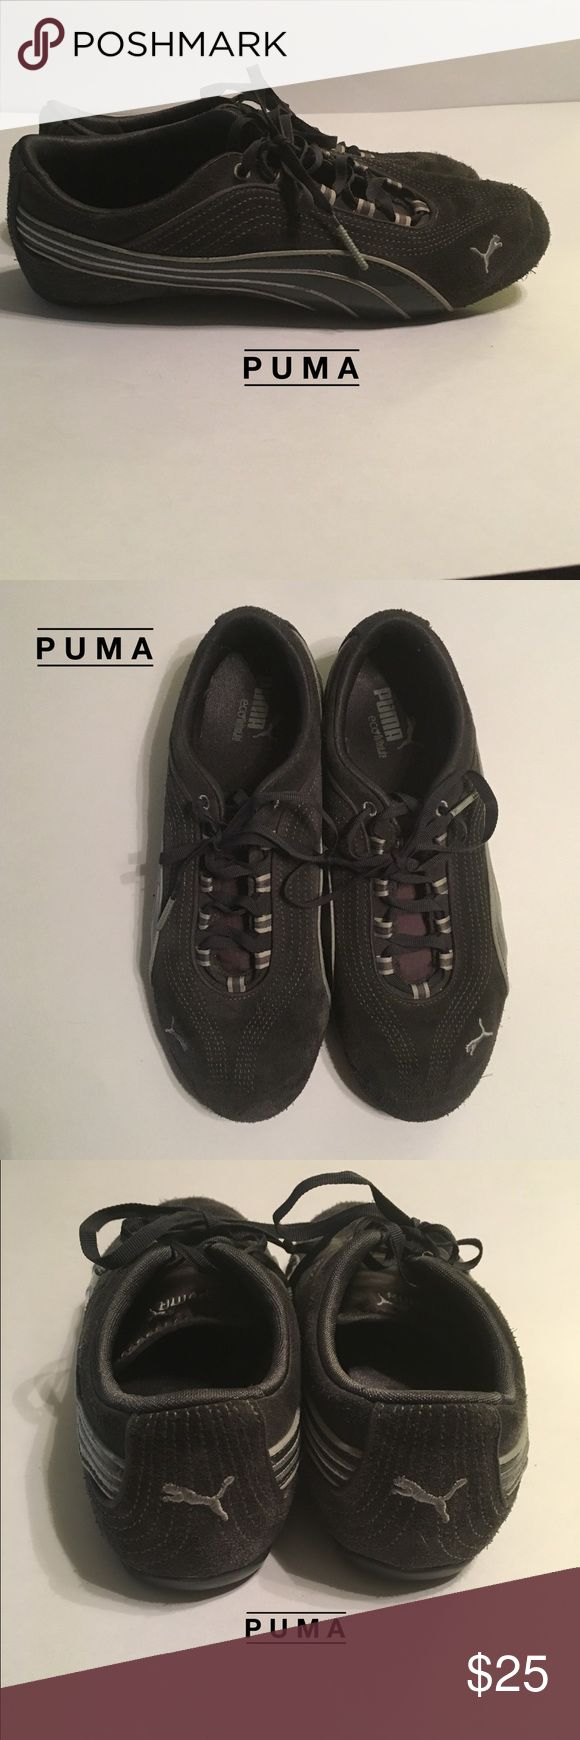 Puma Ladies S:8 Charcoal Gray w light gray on gray Puma Ladies Size: 8 Charcoal Gray tennis shoes. w light gray on gray stripes on sides. Charcoal gray shoelaces. Good condition. Puma Shoes Sneakers